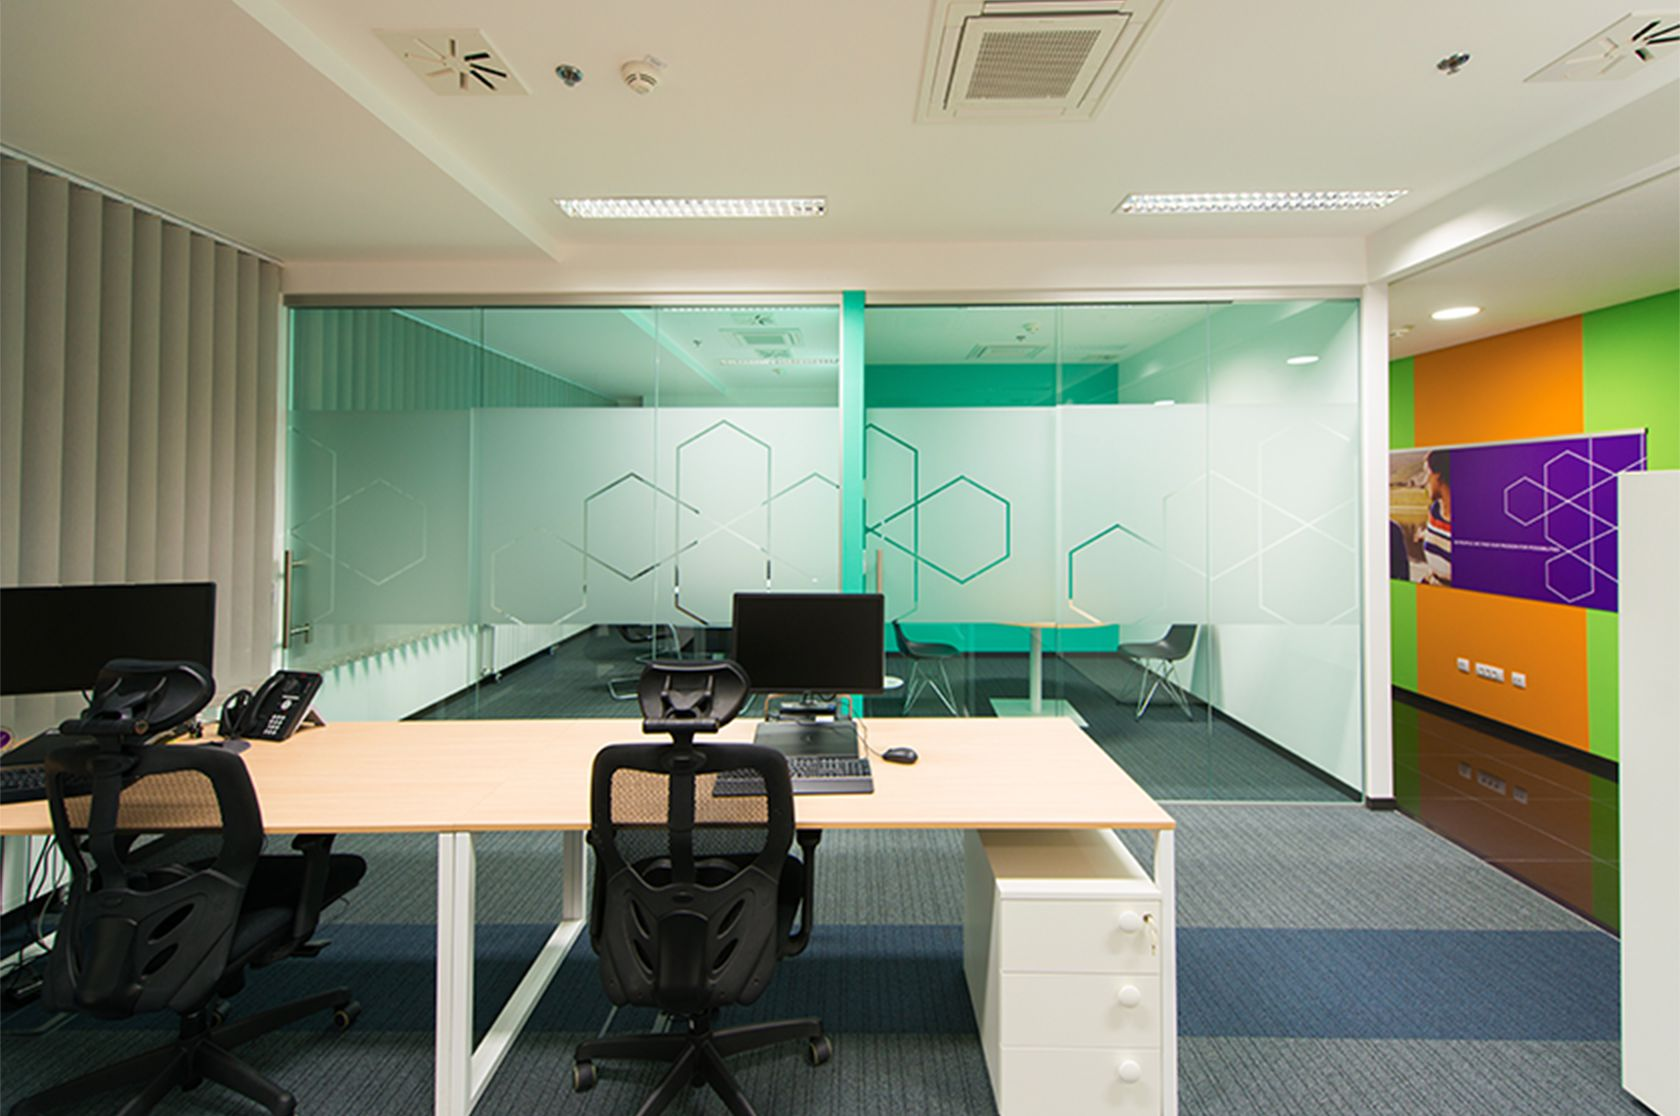 Conference room at AbbVie Croatia office.